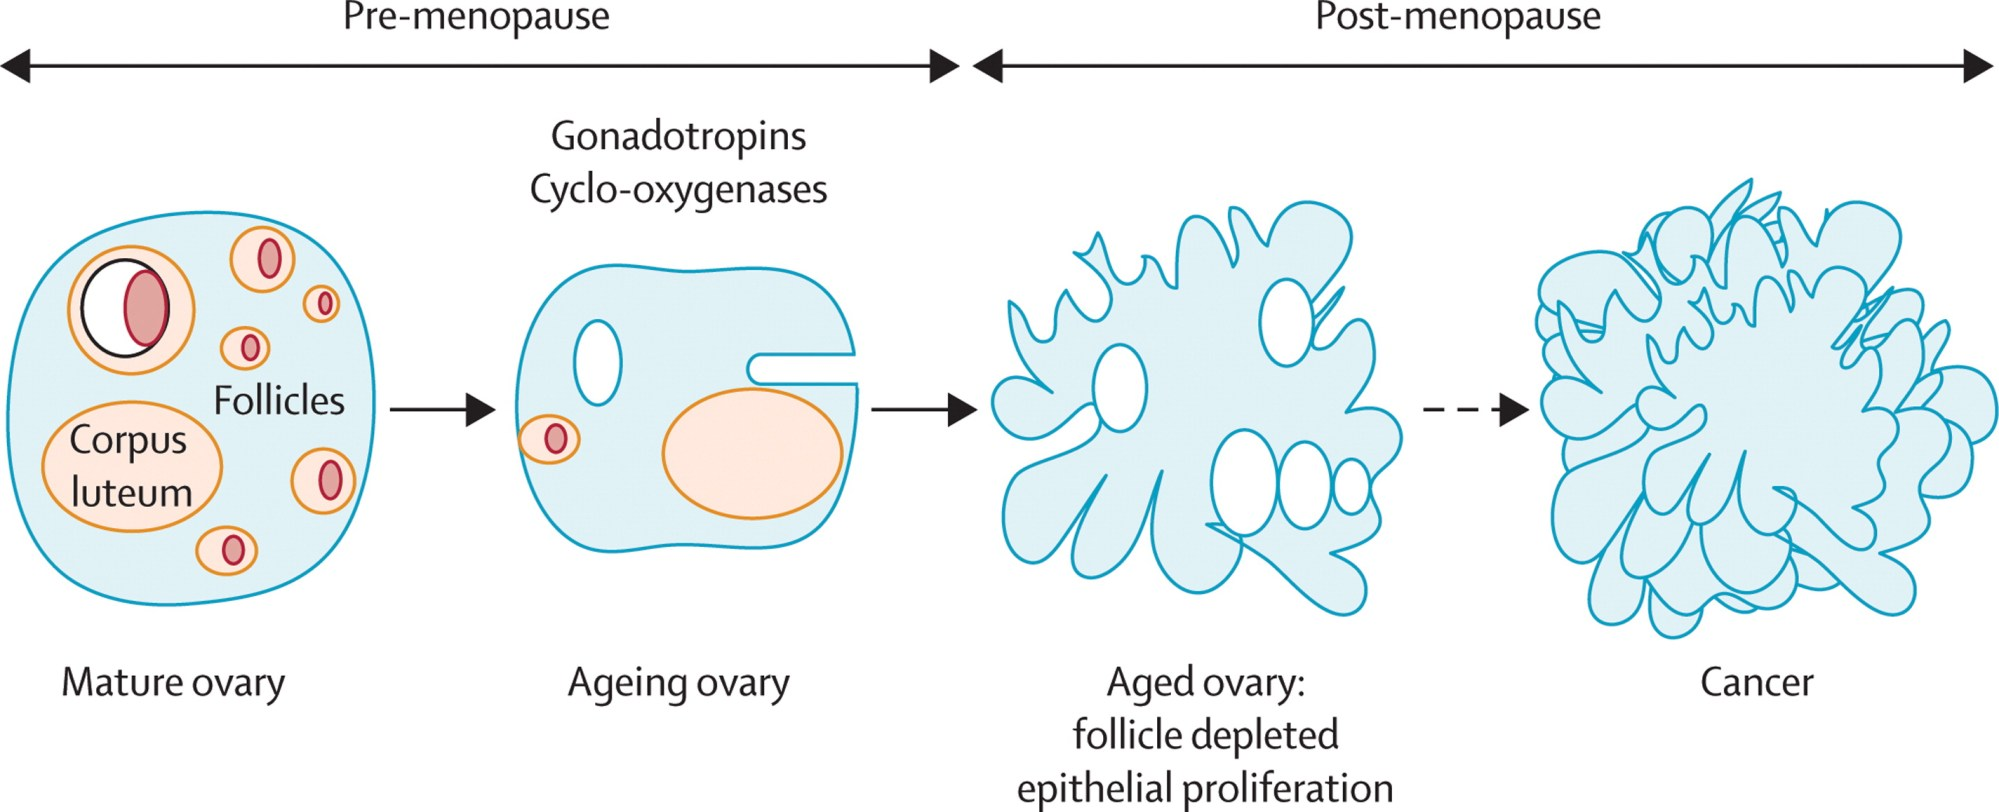 hight resolution of  download ppt follicle depletion explains the